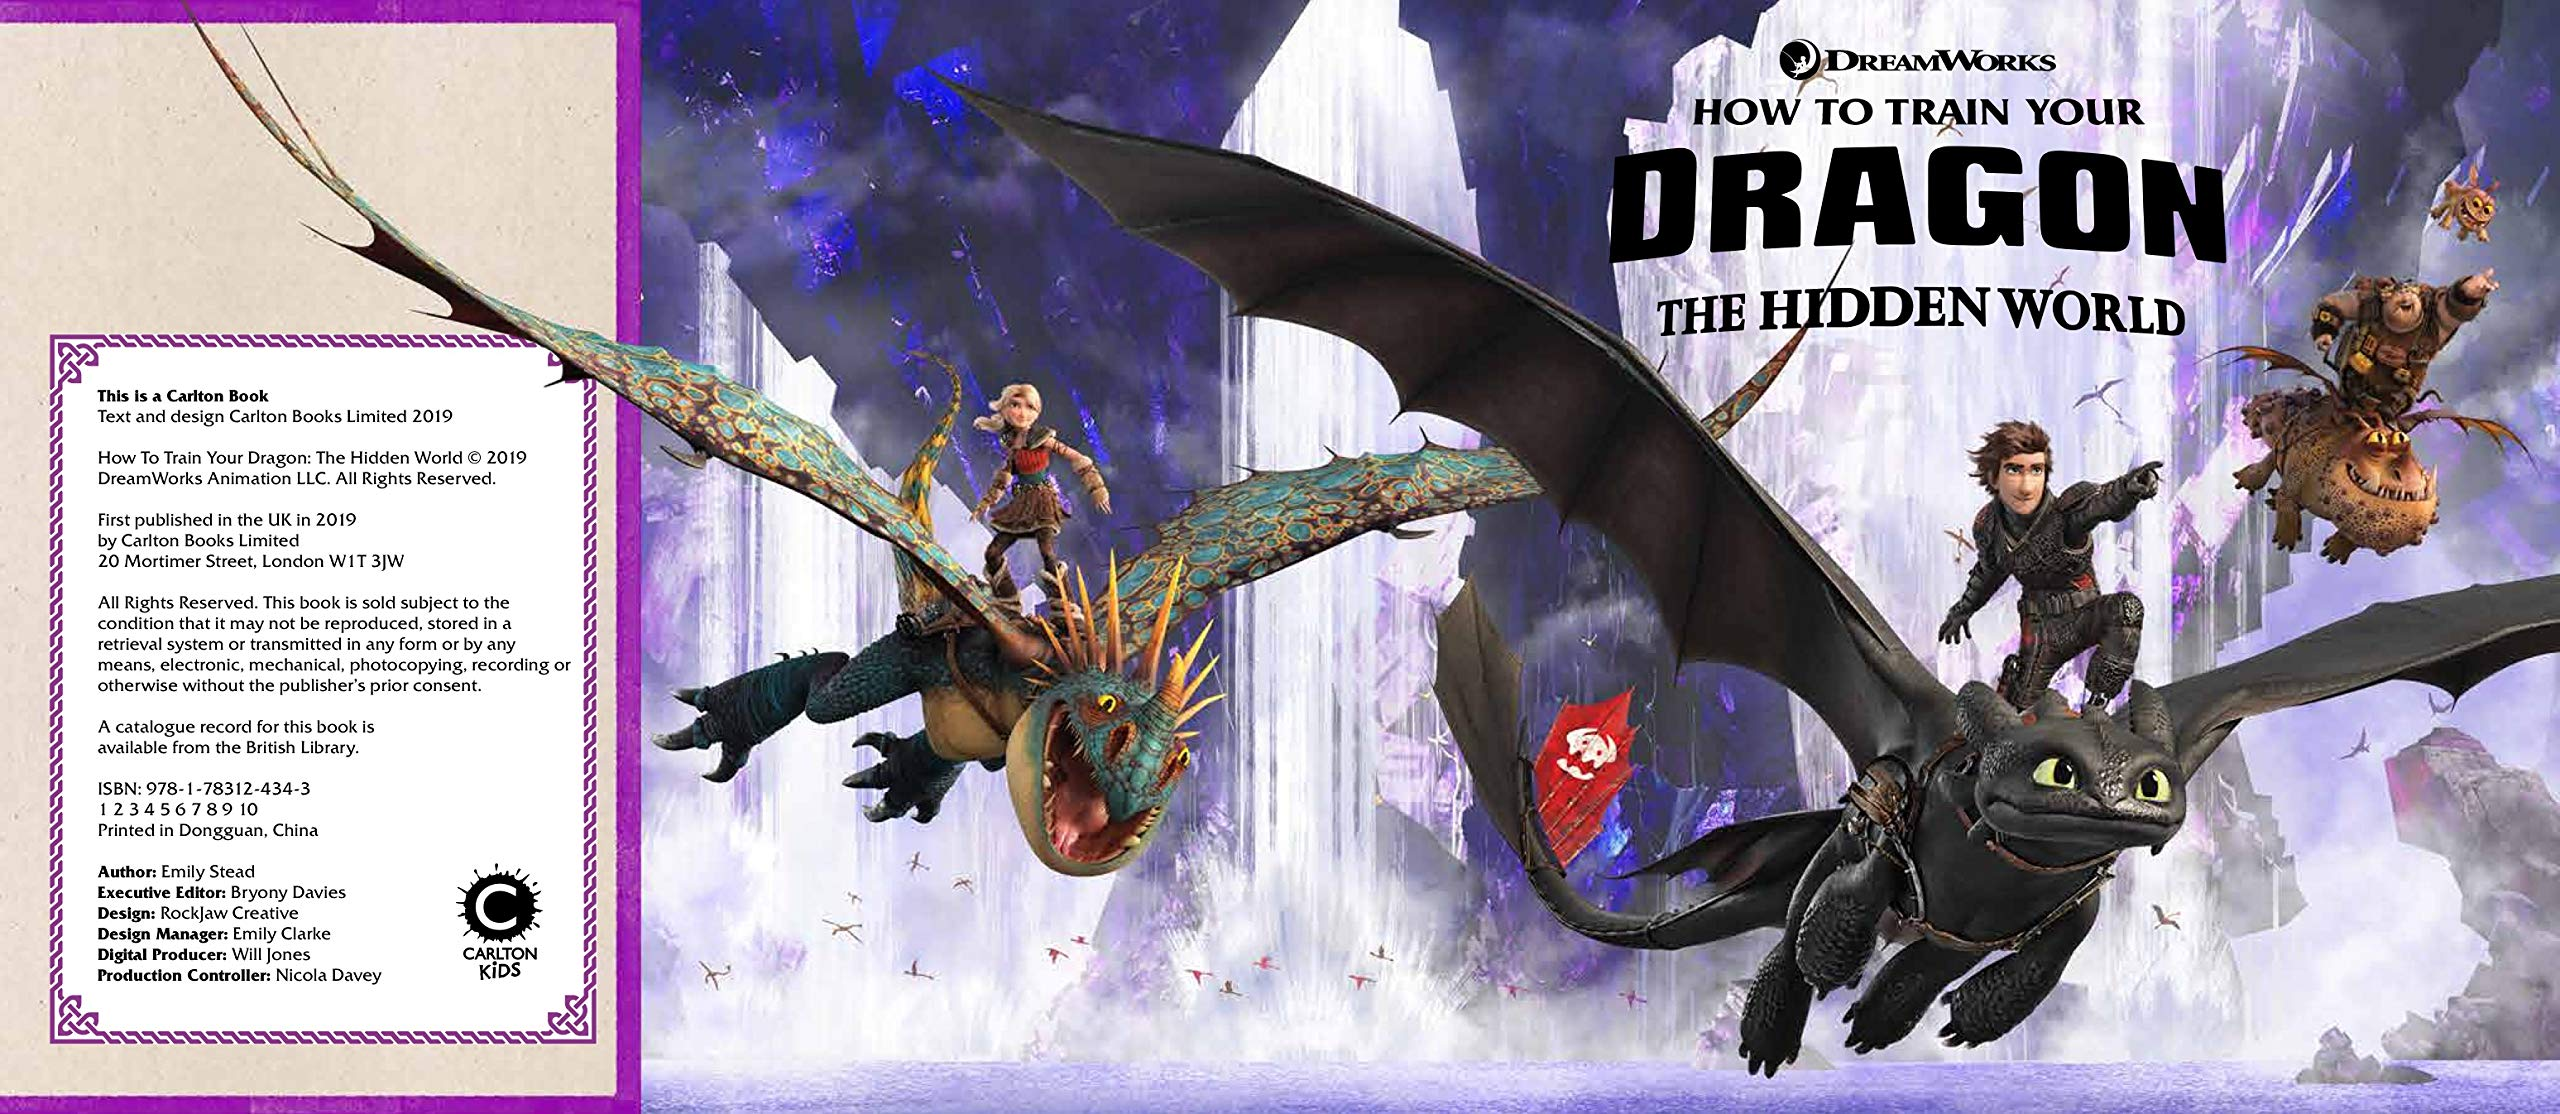 how-to-train-your-dragon-the-hidden-world-2